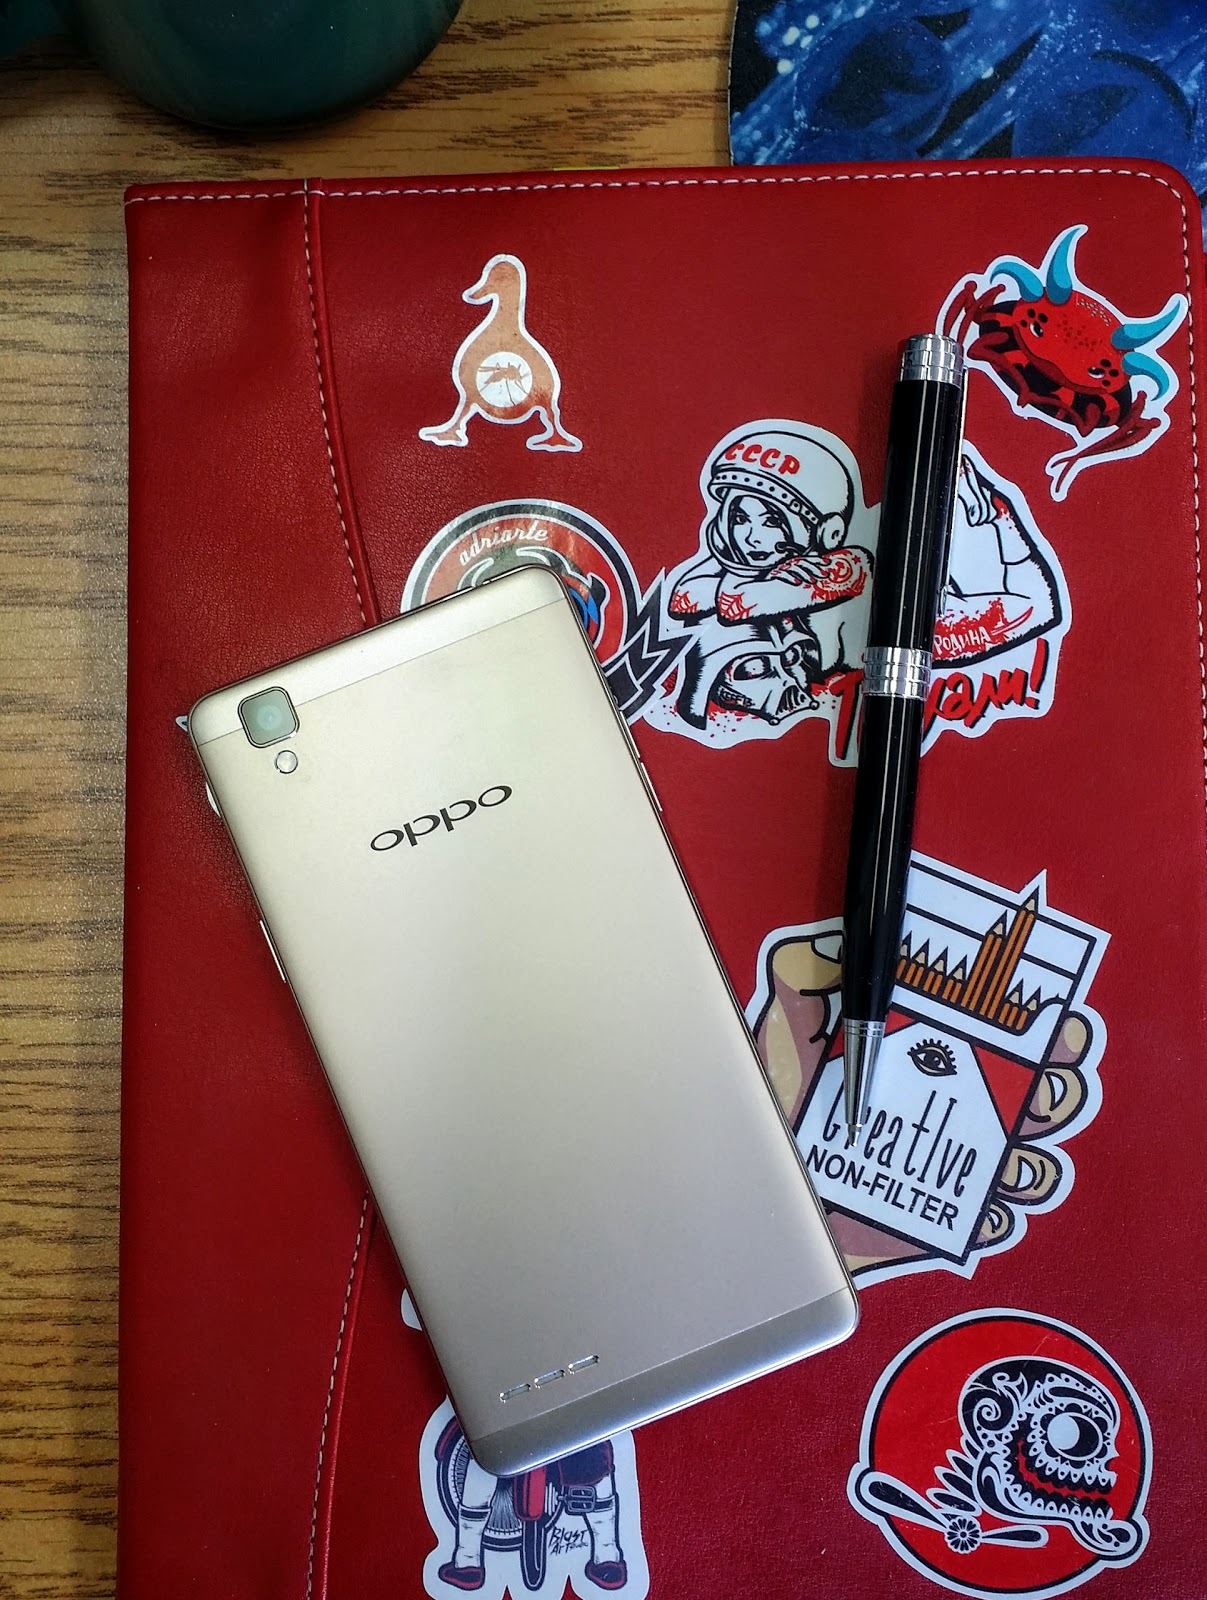 Oppo F1 review - The best Mid-range phone you could get